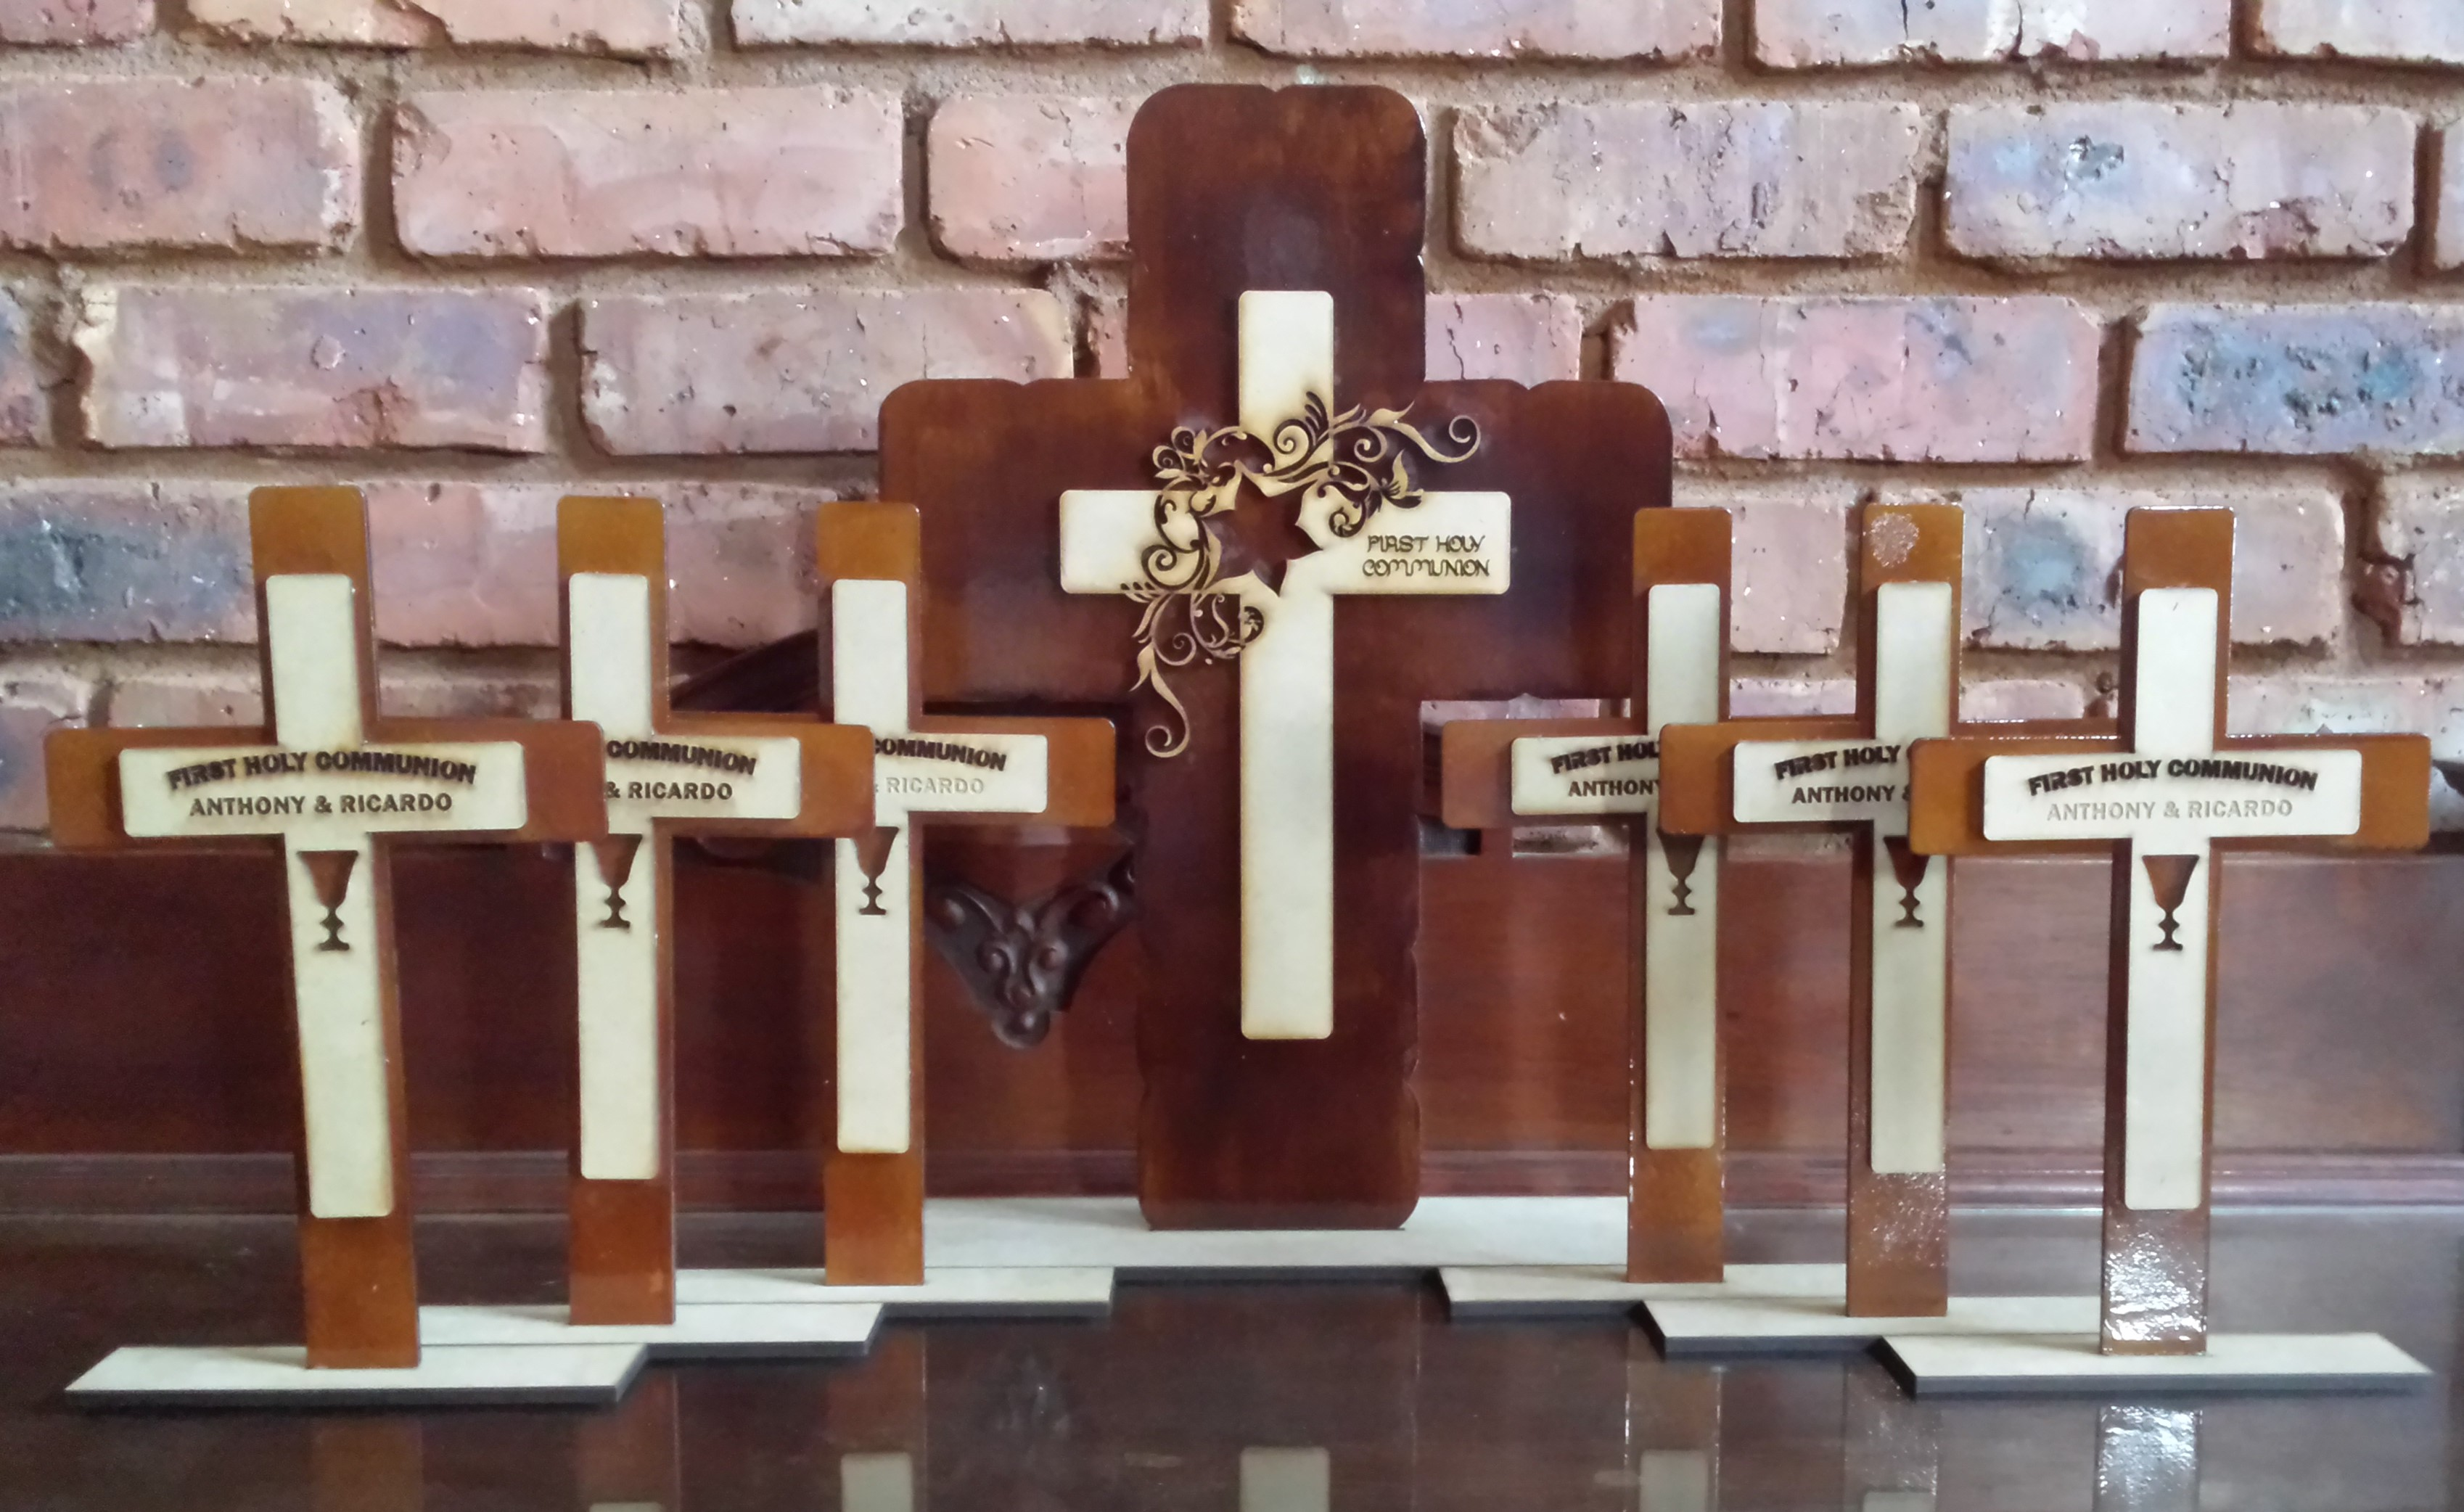 FIRST HOLY COMMUNION TROPHIES 2016.jpg